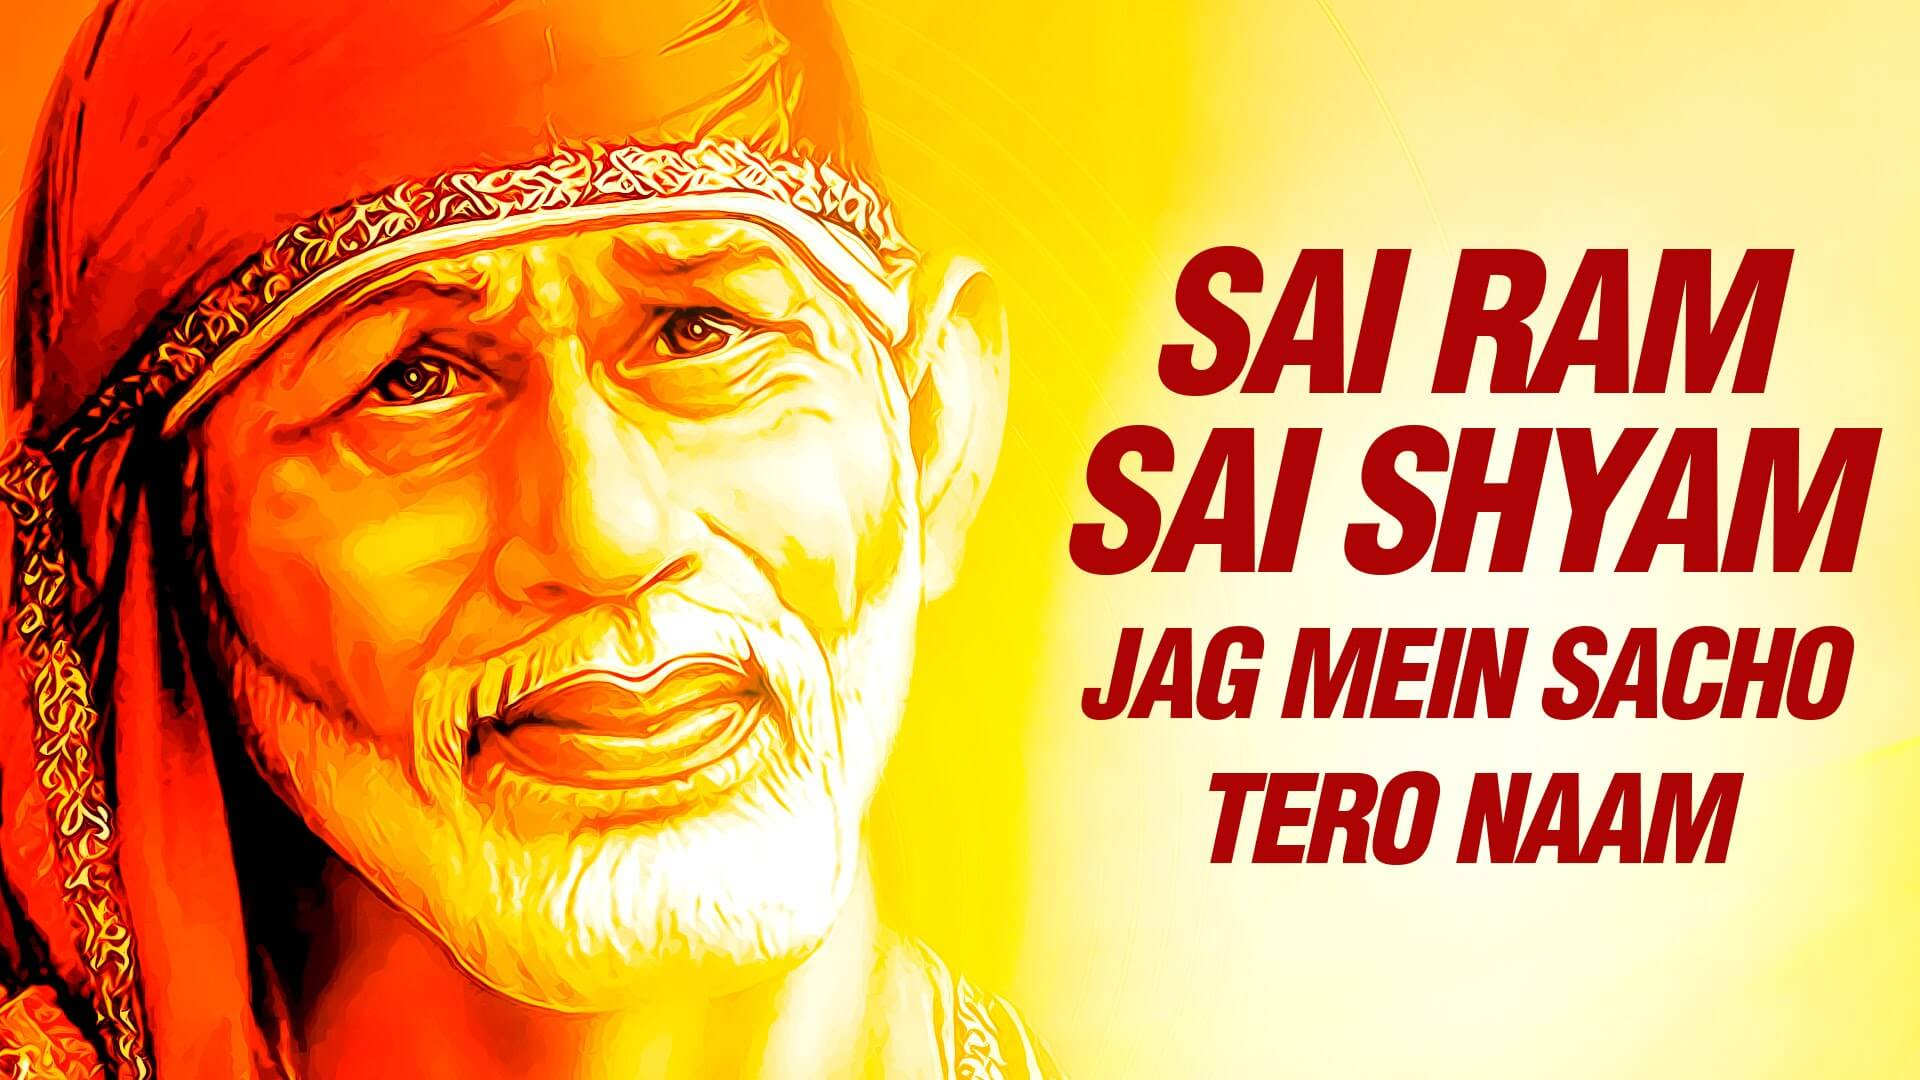 Download Free HD Wallpapers & Photos of Shirdi Sai Baba